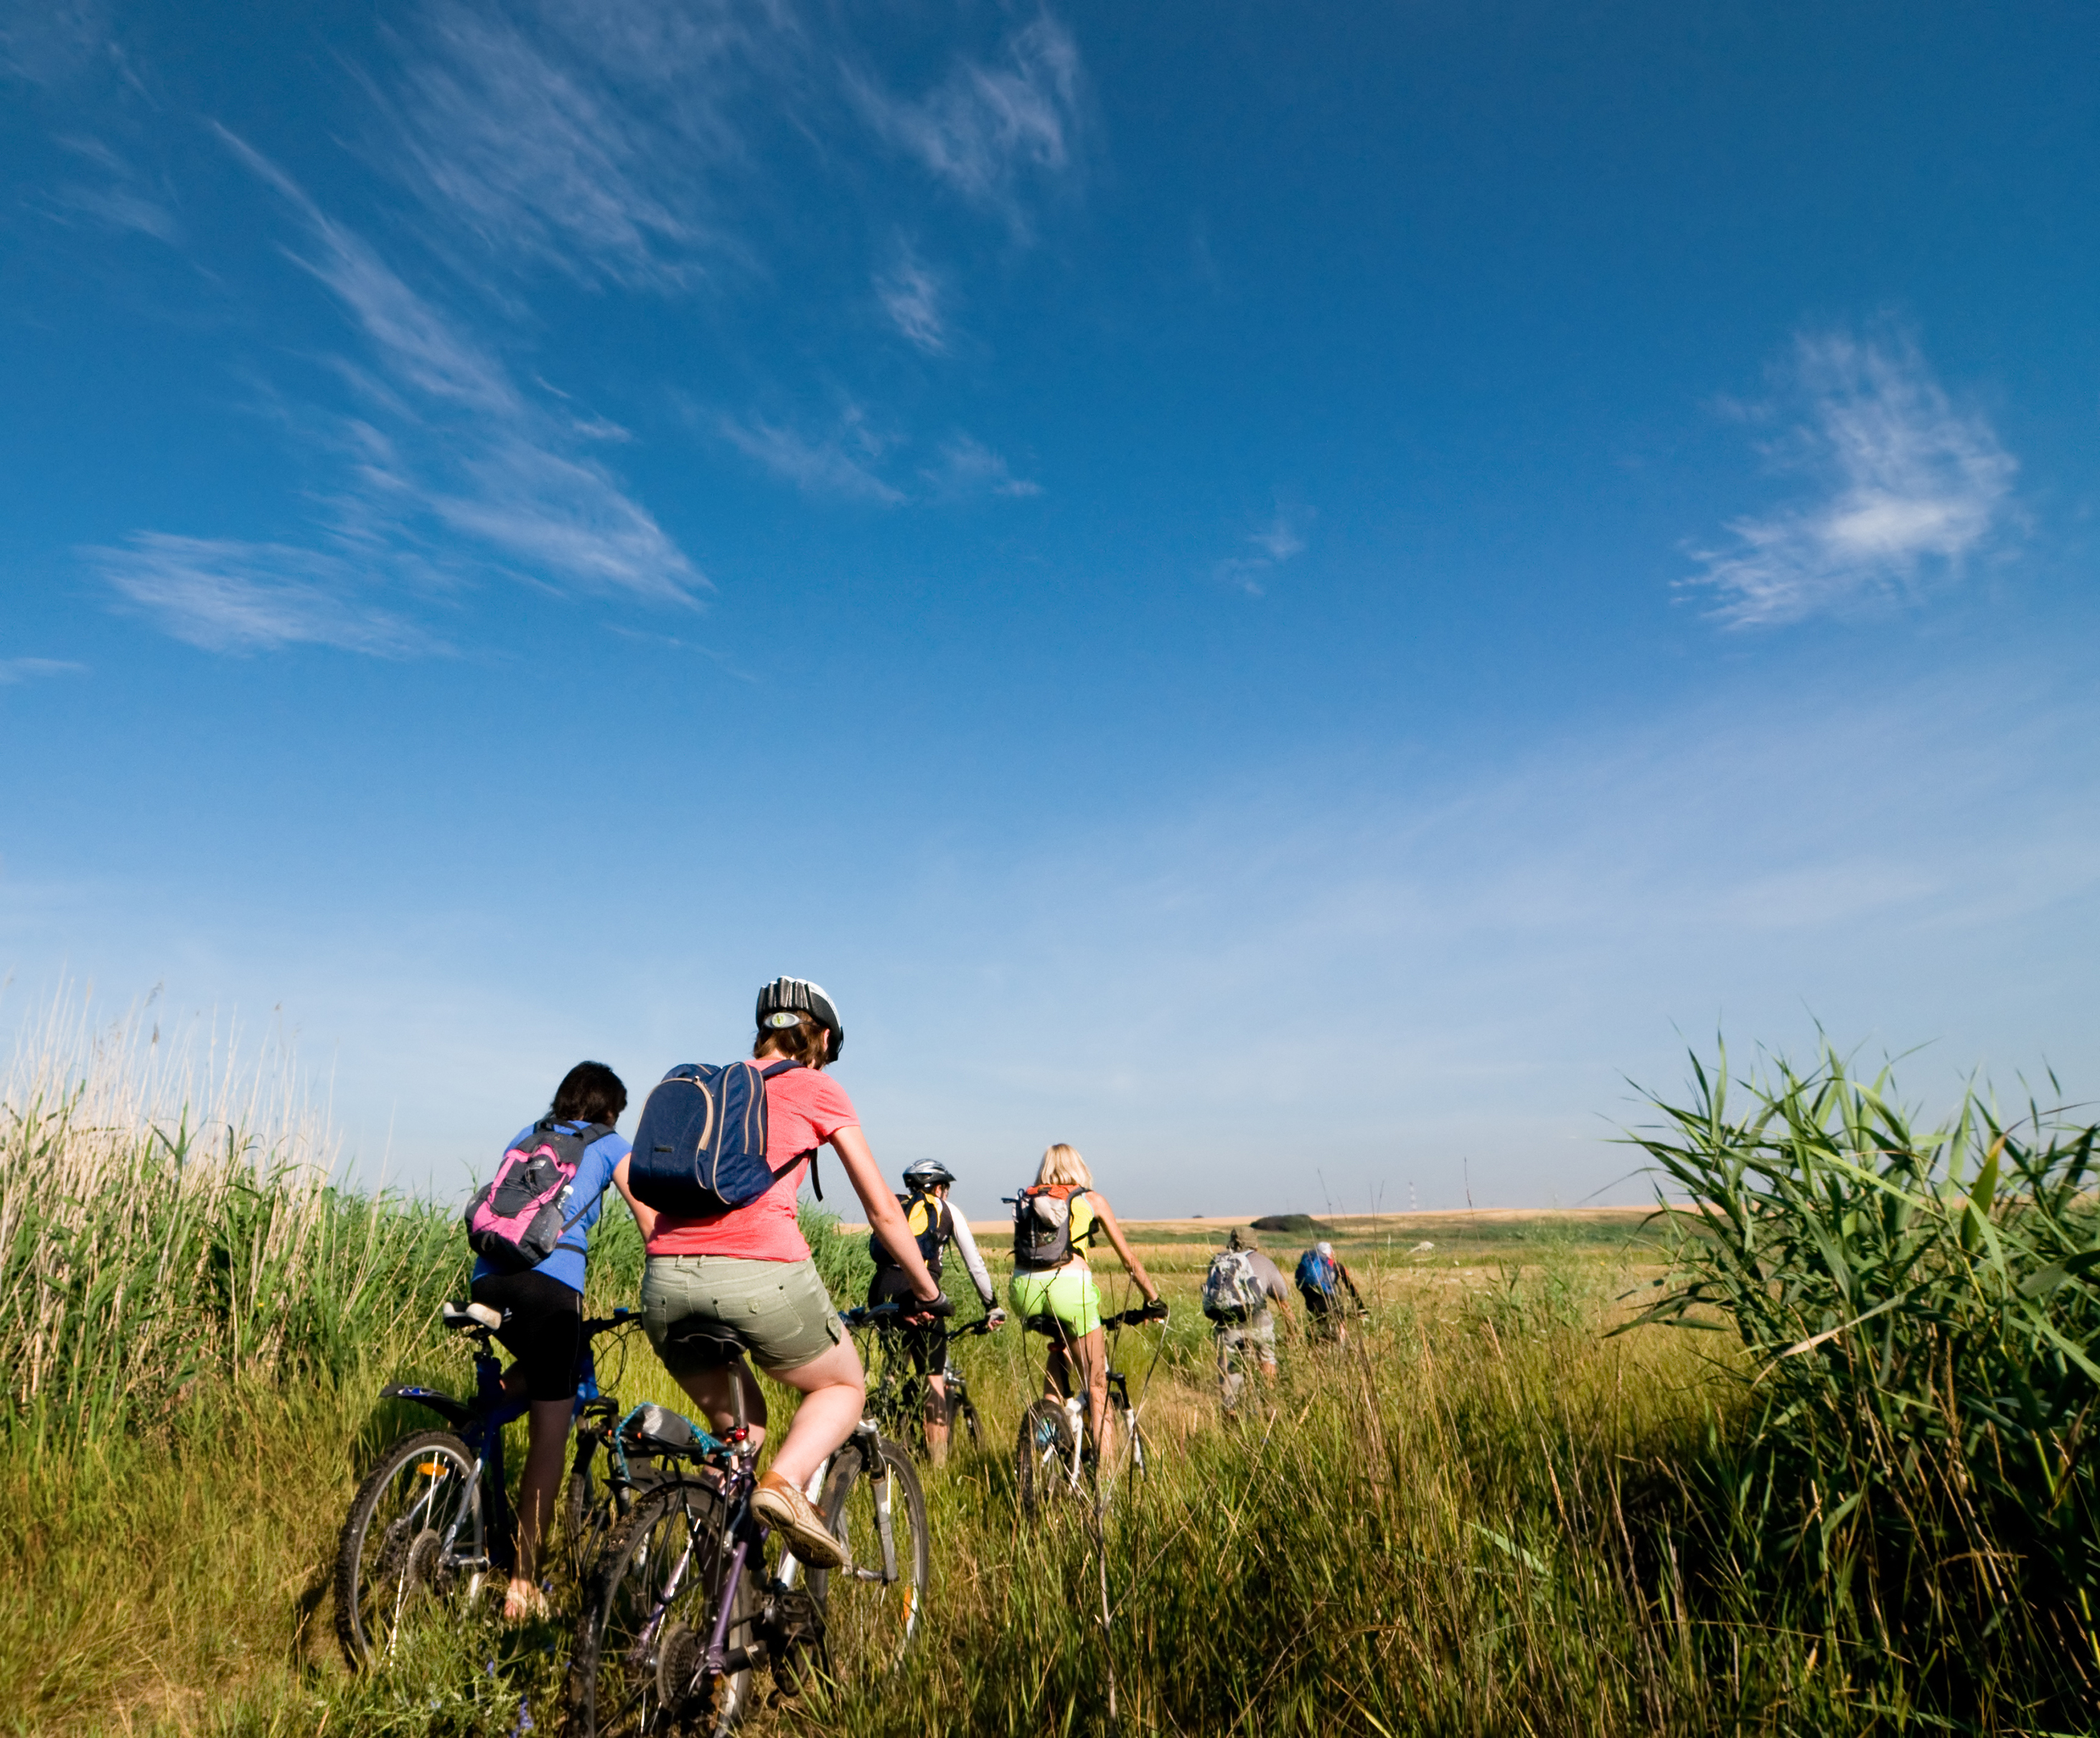 Group-cycling-shutterstock_49966309